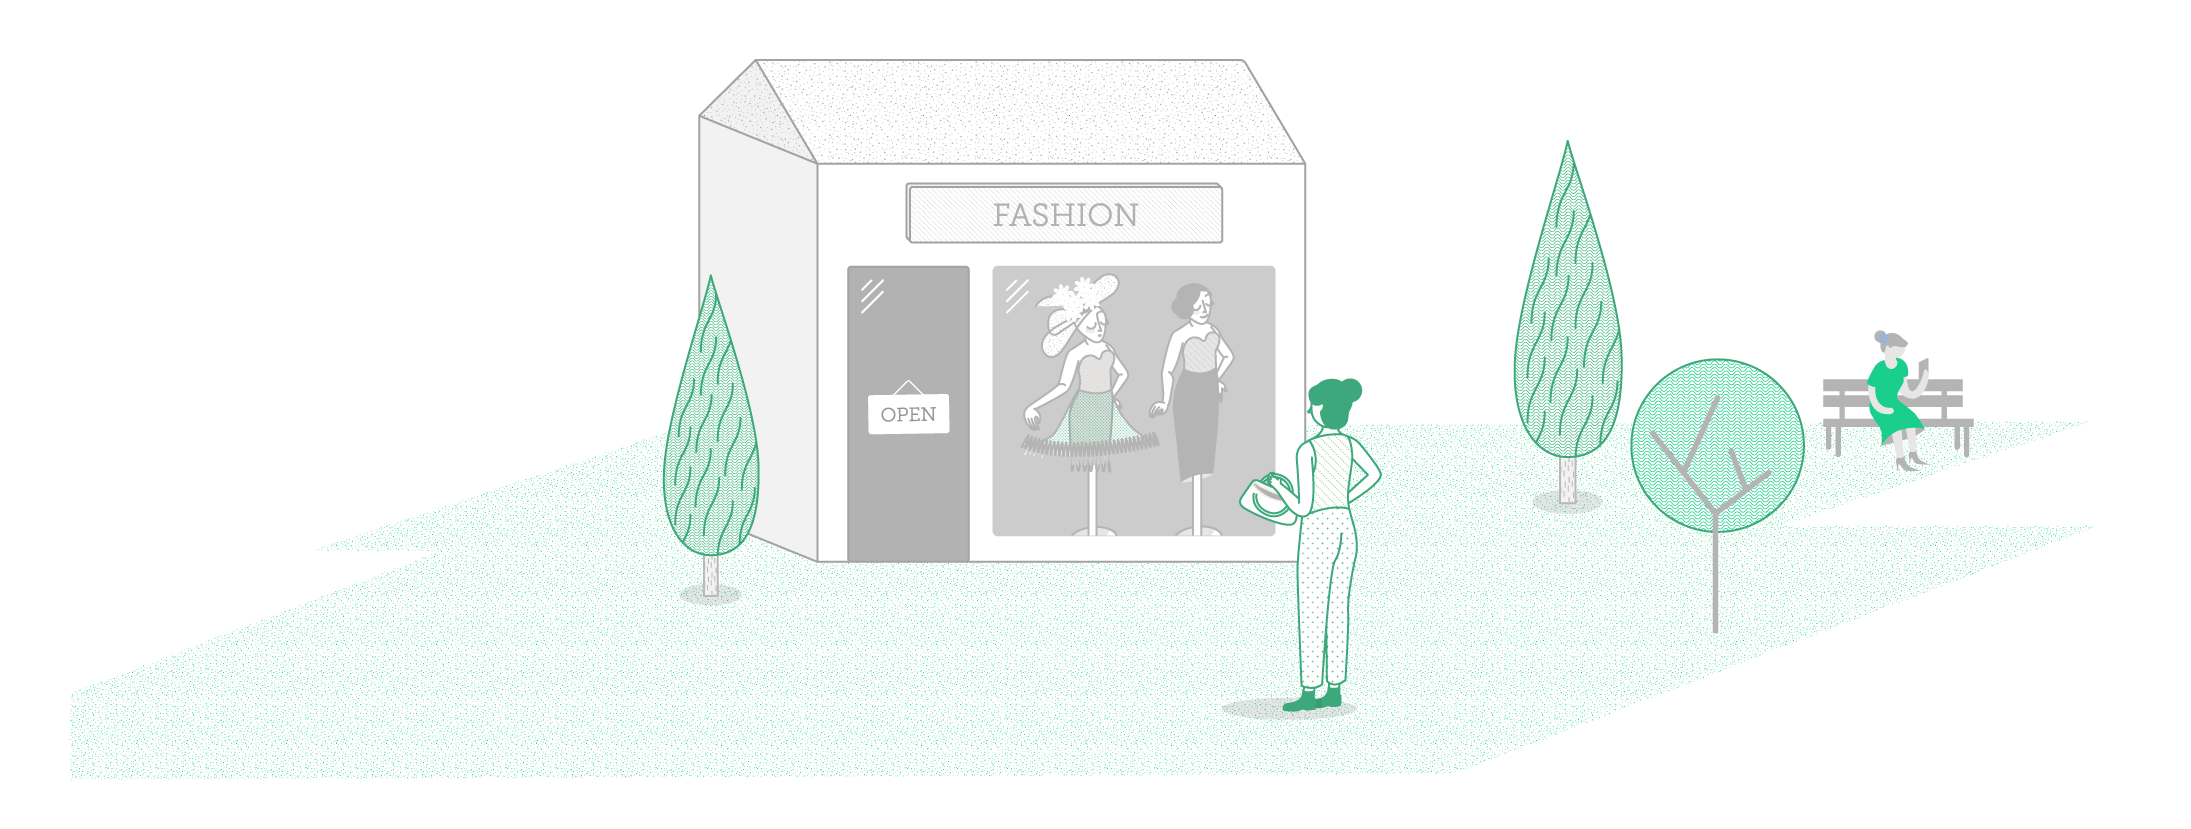 Our 2017 Report on Fighting Fraud in Online Fashion